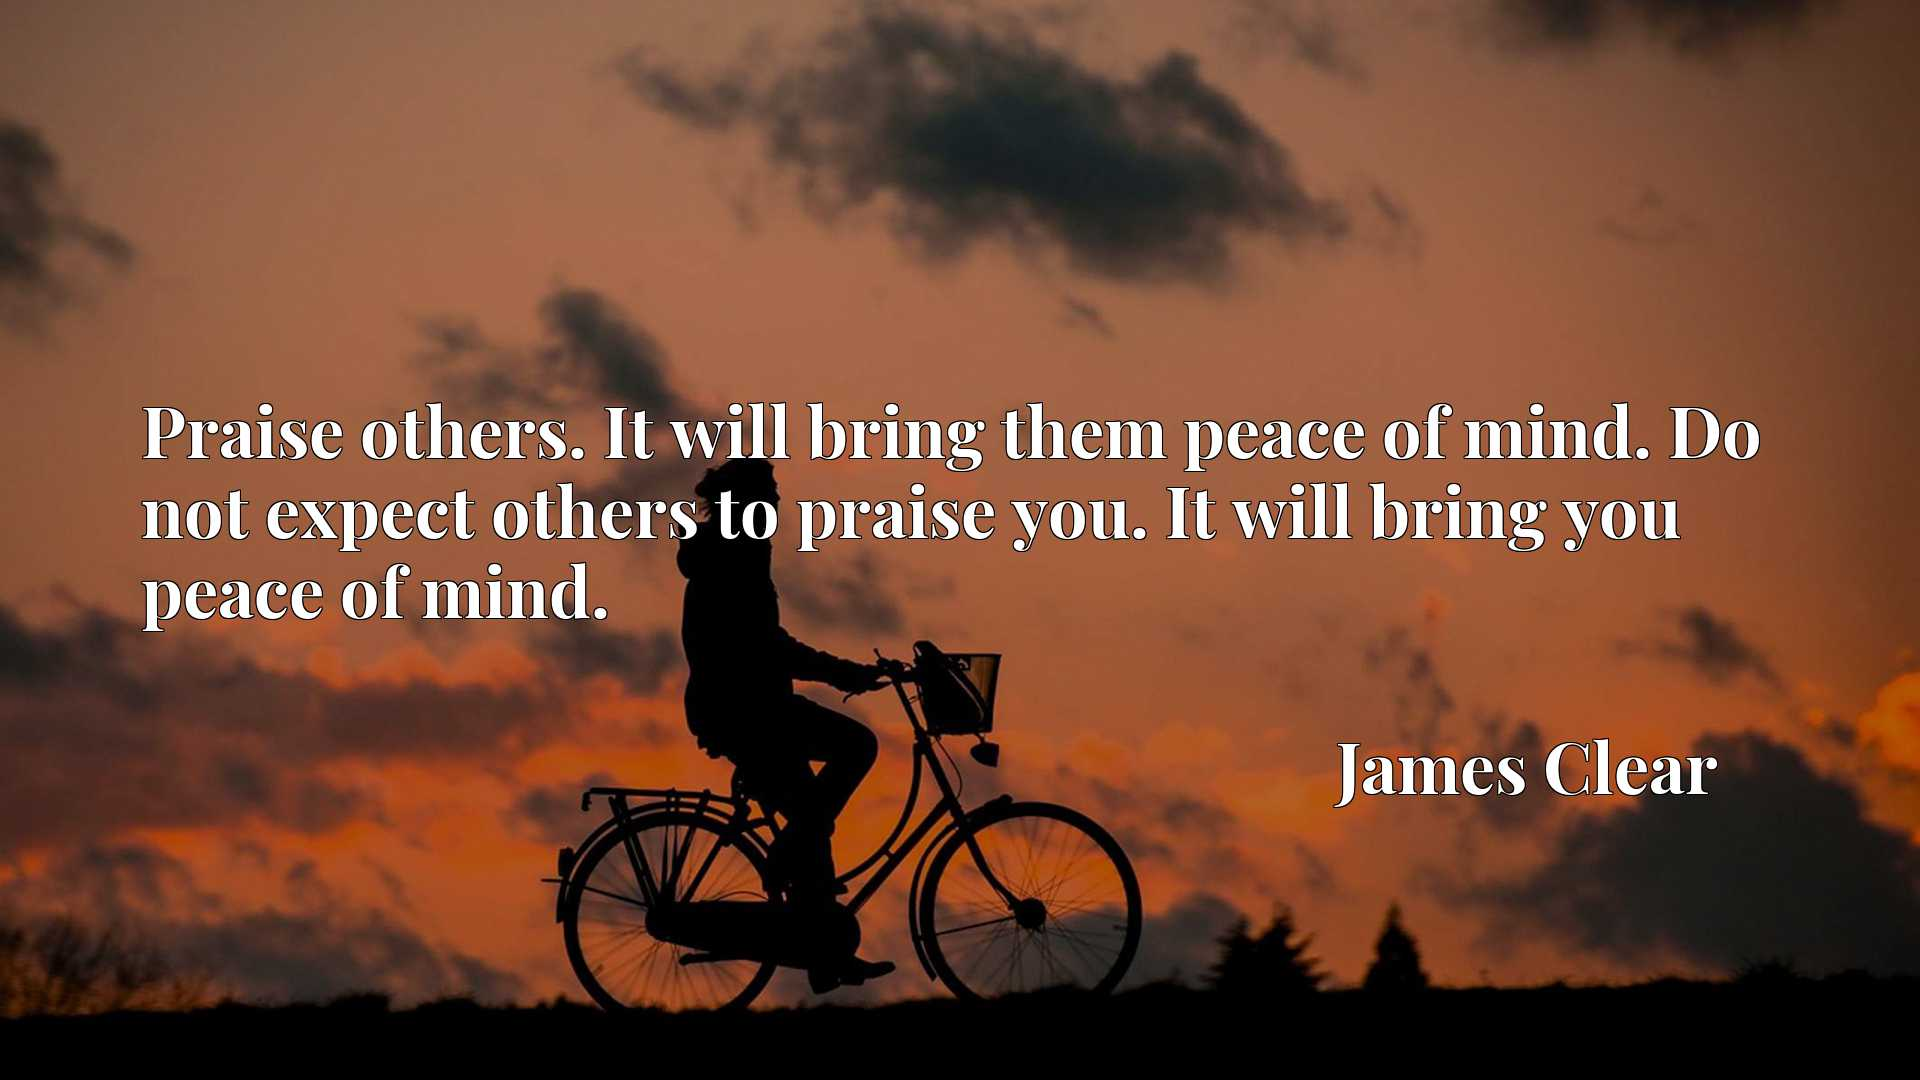 Praise others. It will bring them peace of mind. Do not expect others to praise you. It will bring you peace of mind.